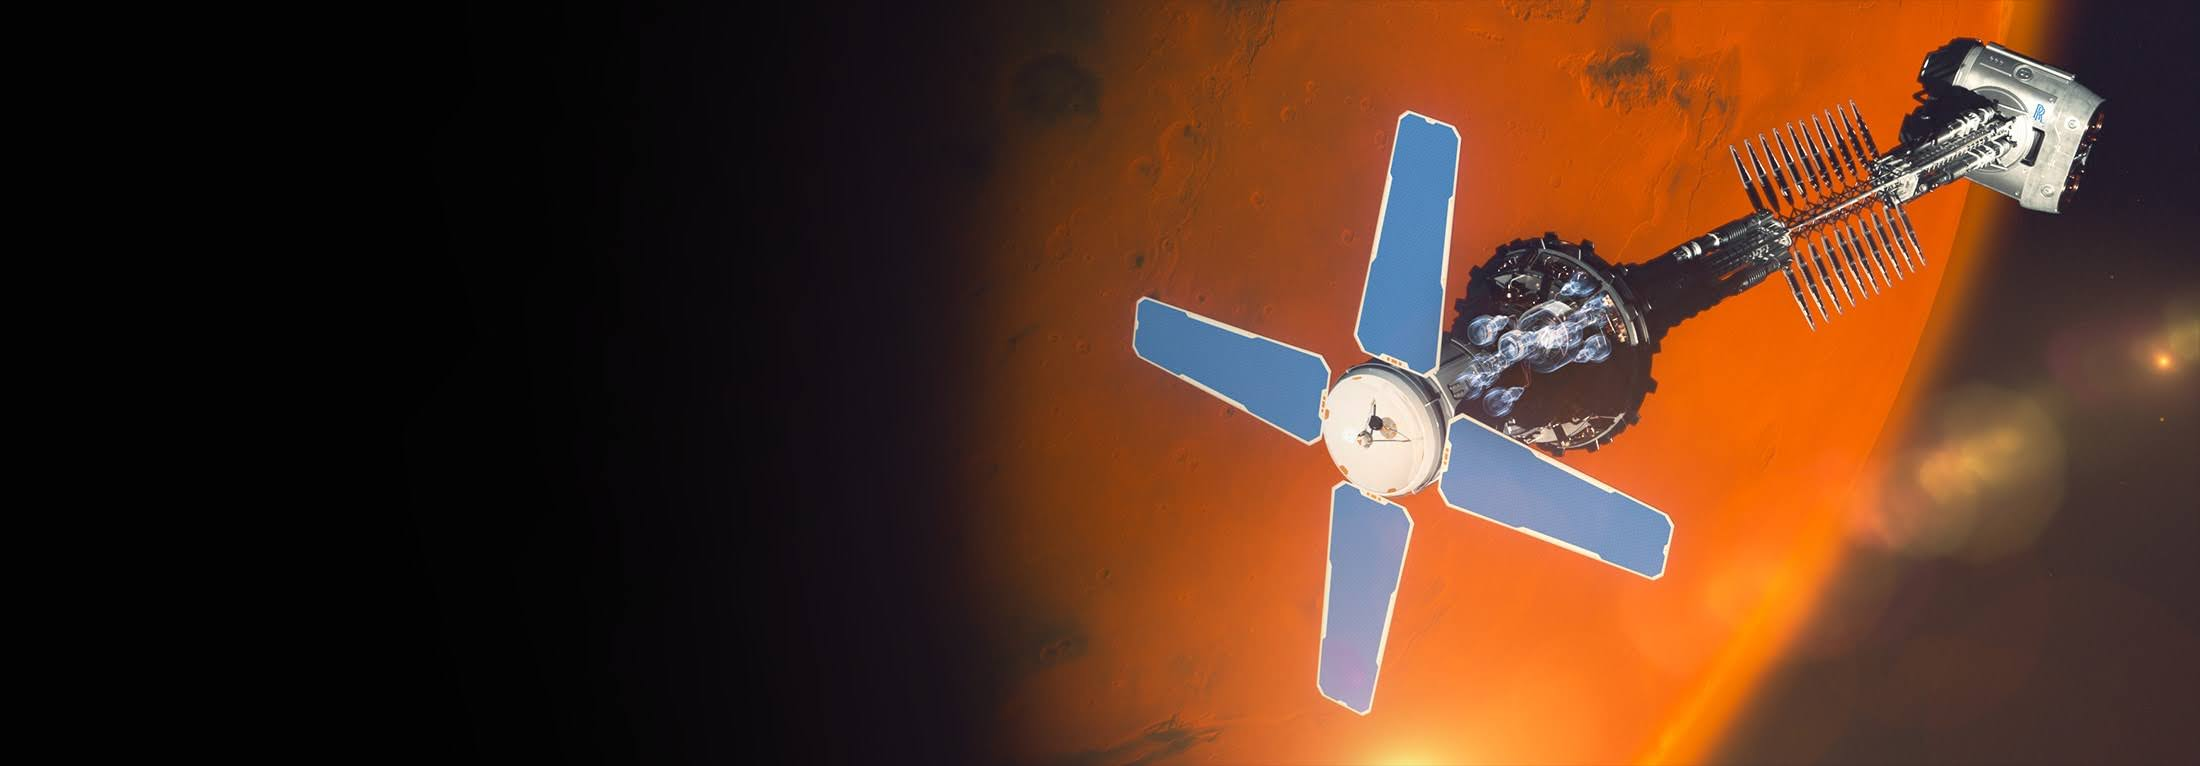 Artist's concept of a spacecraft over Mars utilizing nuclear power